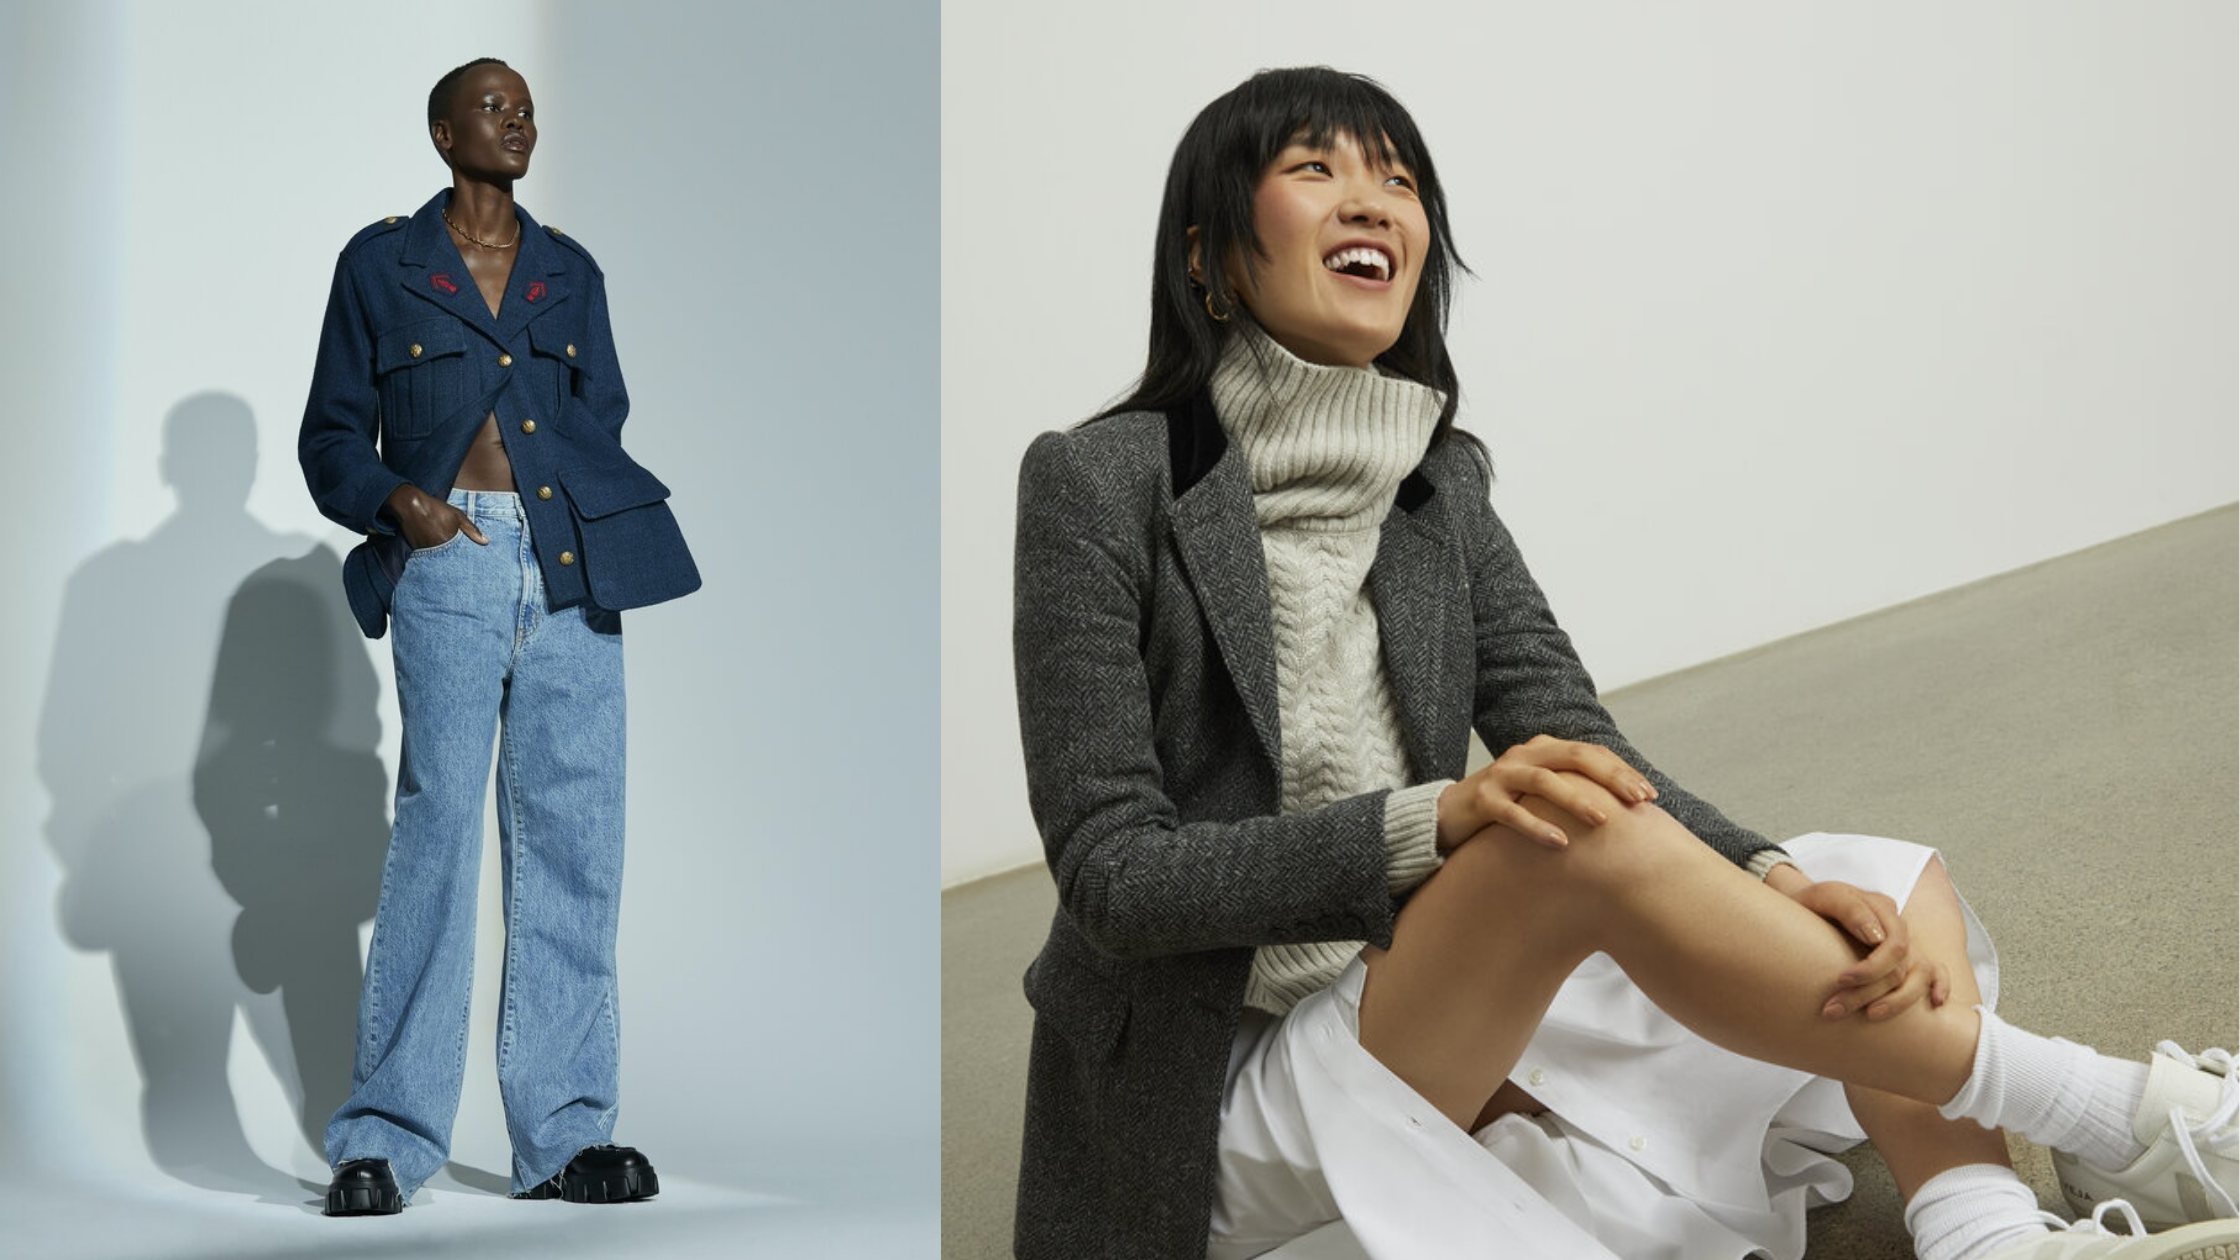 Holt Renfrew, Campaign for Wool Canada to Spotlight Latest in Sustainable Fashion with 2021 Capsule Collection